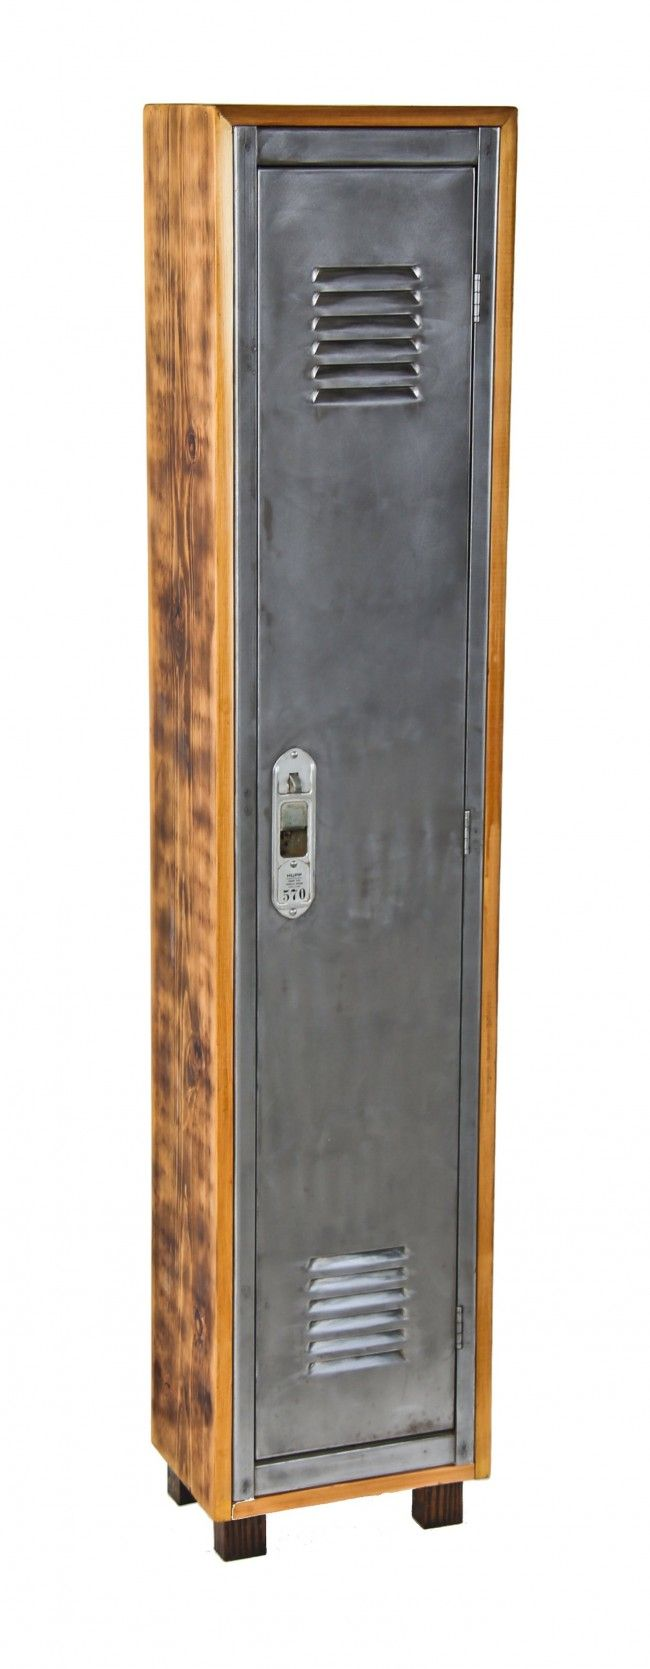 Repurpose vintage locker repurposed transformed rustic for Repurposed metal furniture